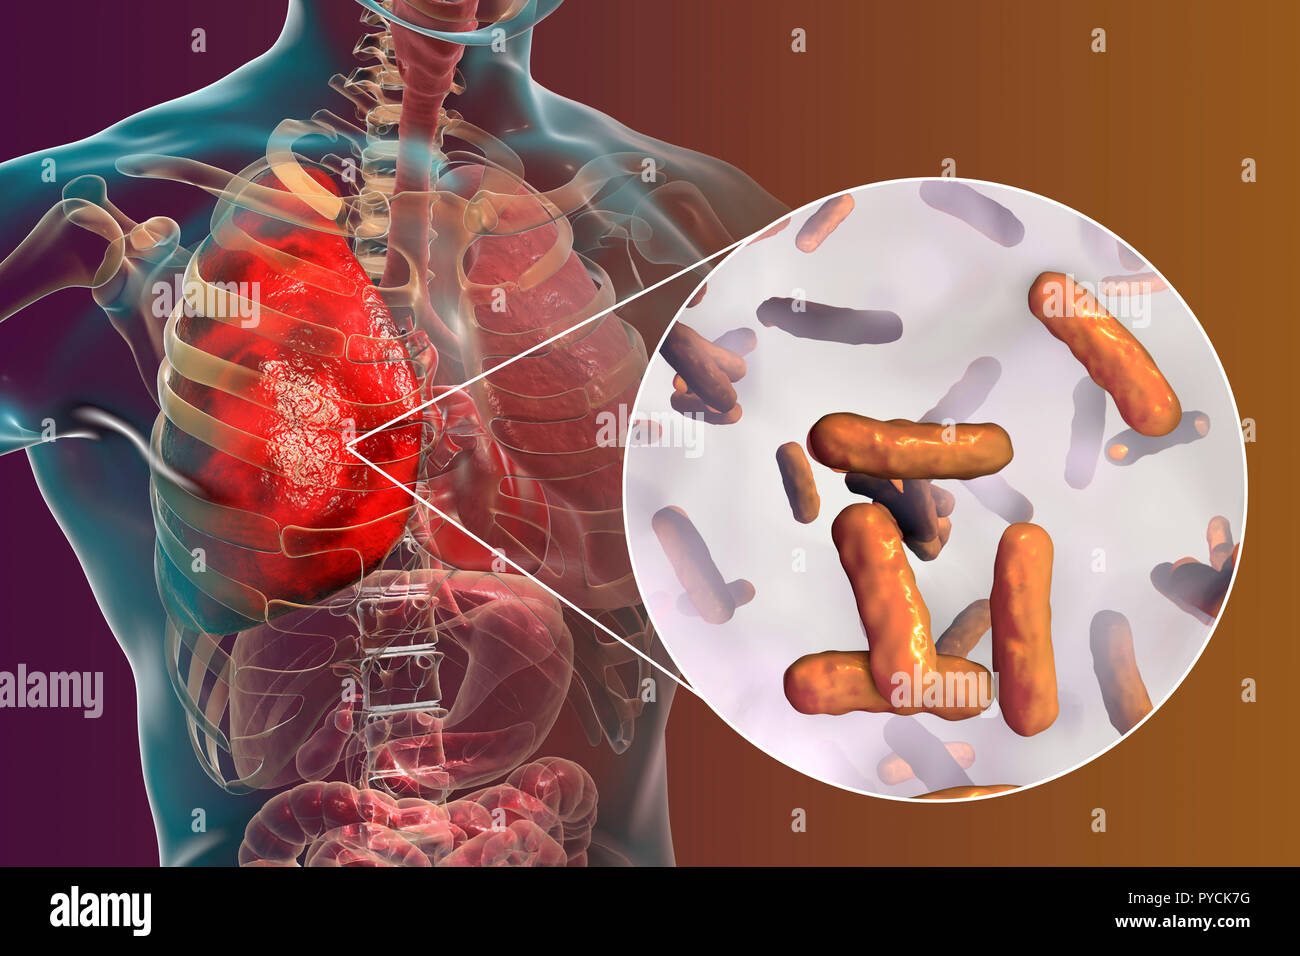 Pneumonia caused by bacteria Pseudomonas aeruginosa, computer illustration. P. aeruginosa is a Gram-negative bacterium which causes multiple antibiotic resistant nosocomial (hospital-acquired) infections of different location, including pneumonia, osteomyelitis, peritonitis and wound infections. - Stock Image